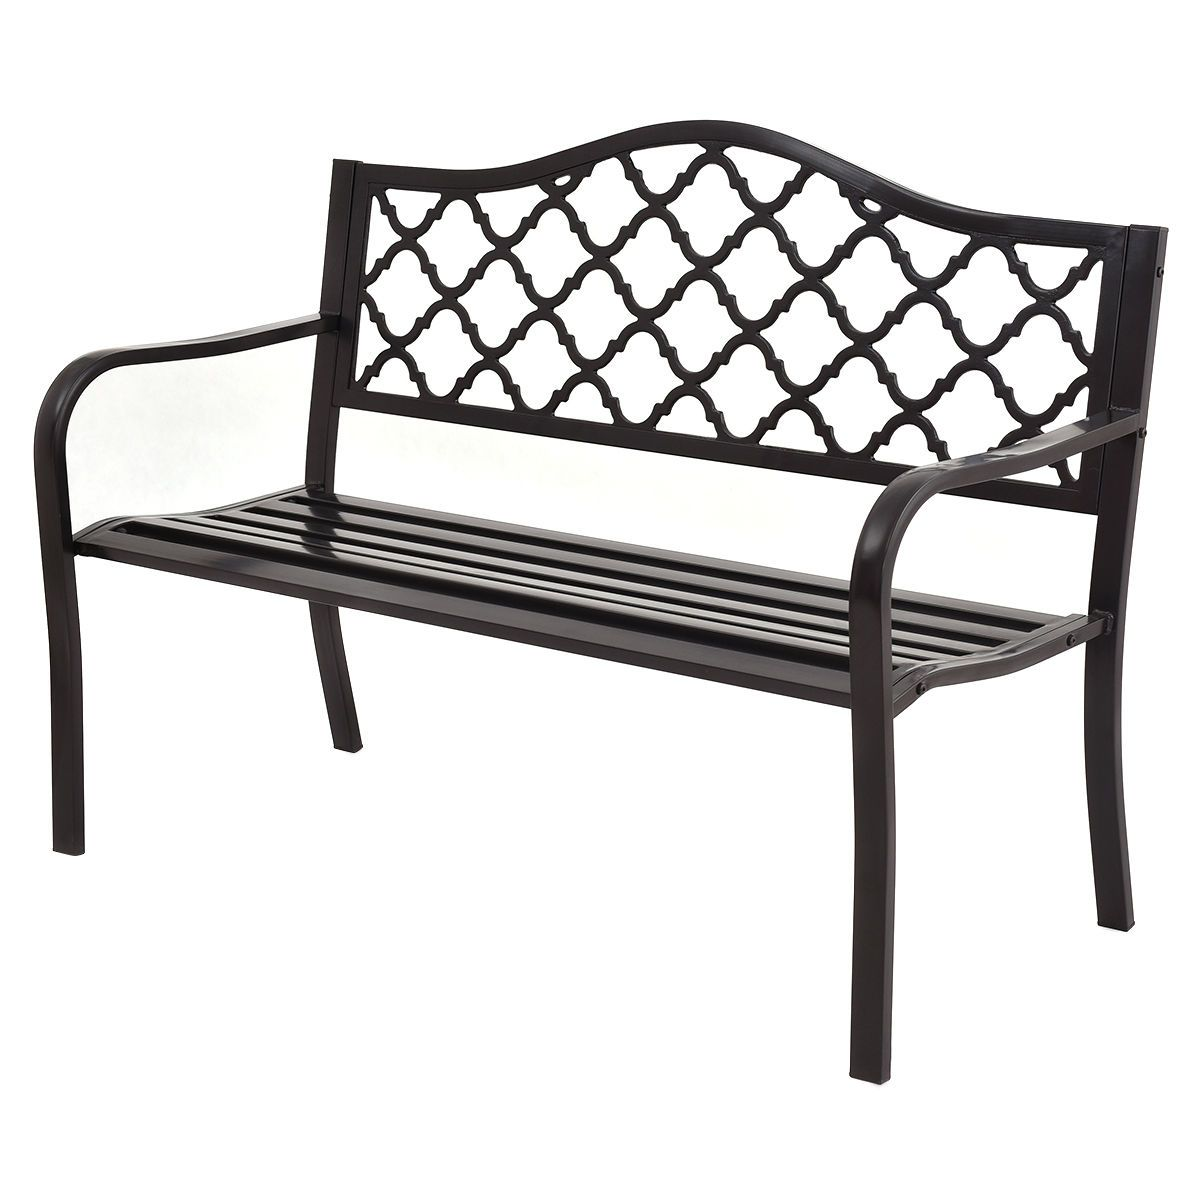 Outdoor Black Cast Iron Frame Patio Bench